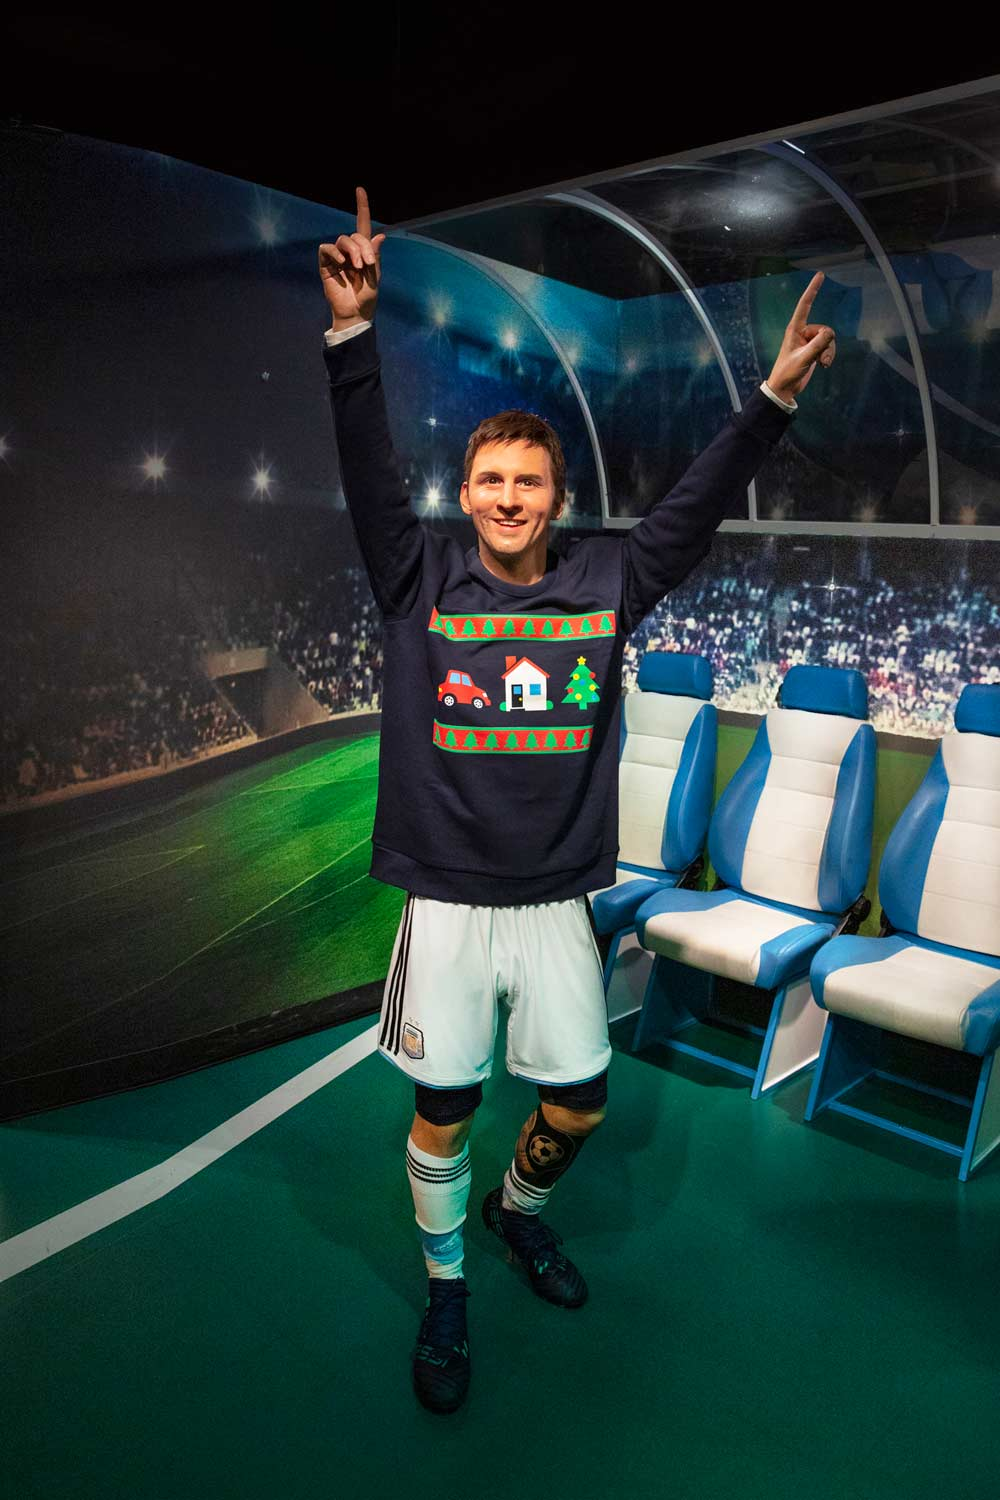 Kersttrui 10 Euro.Save The Children Voetbalheld Lionel Messi Showt Save The